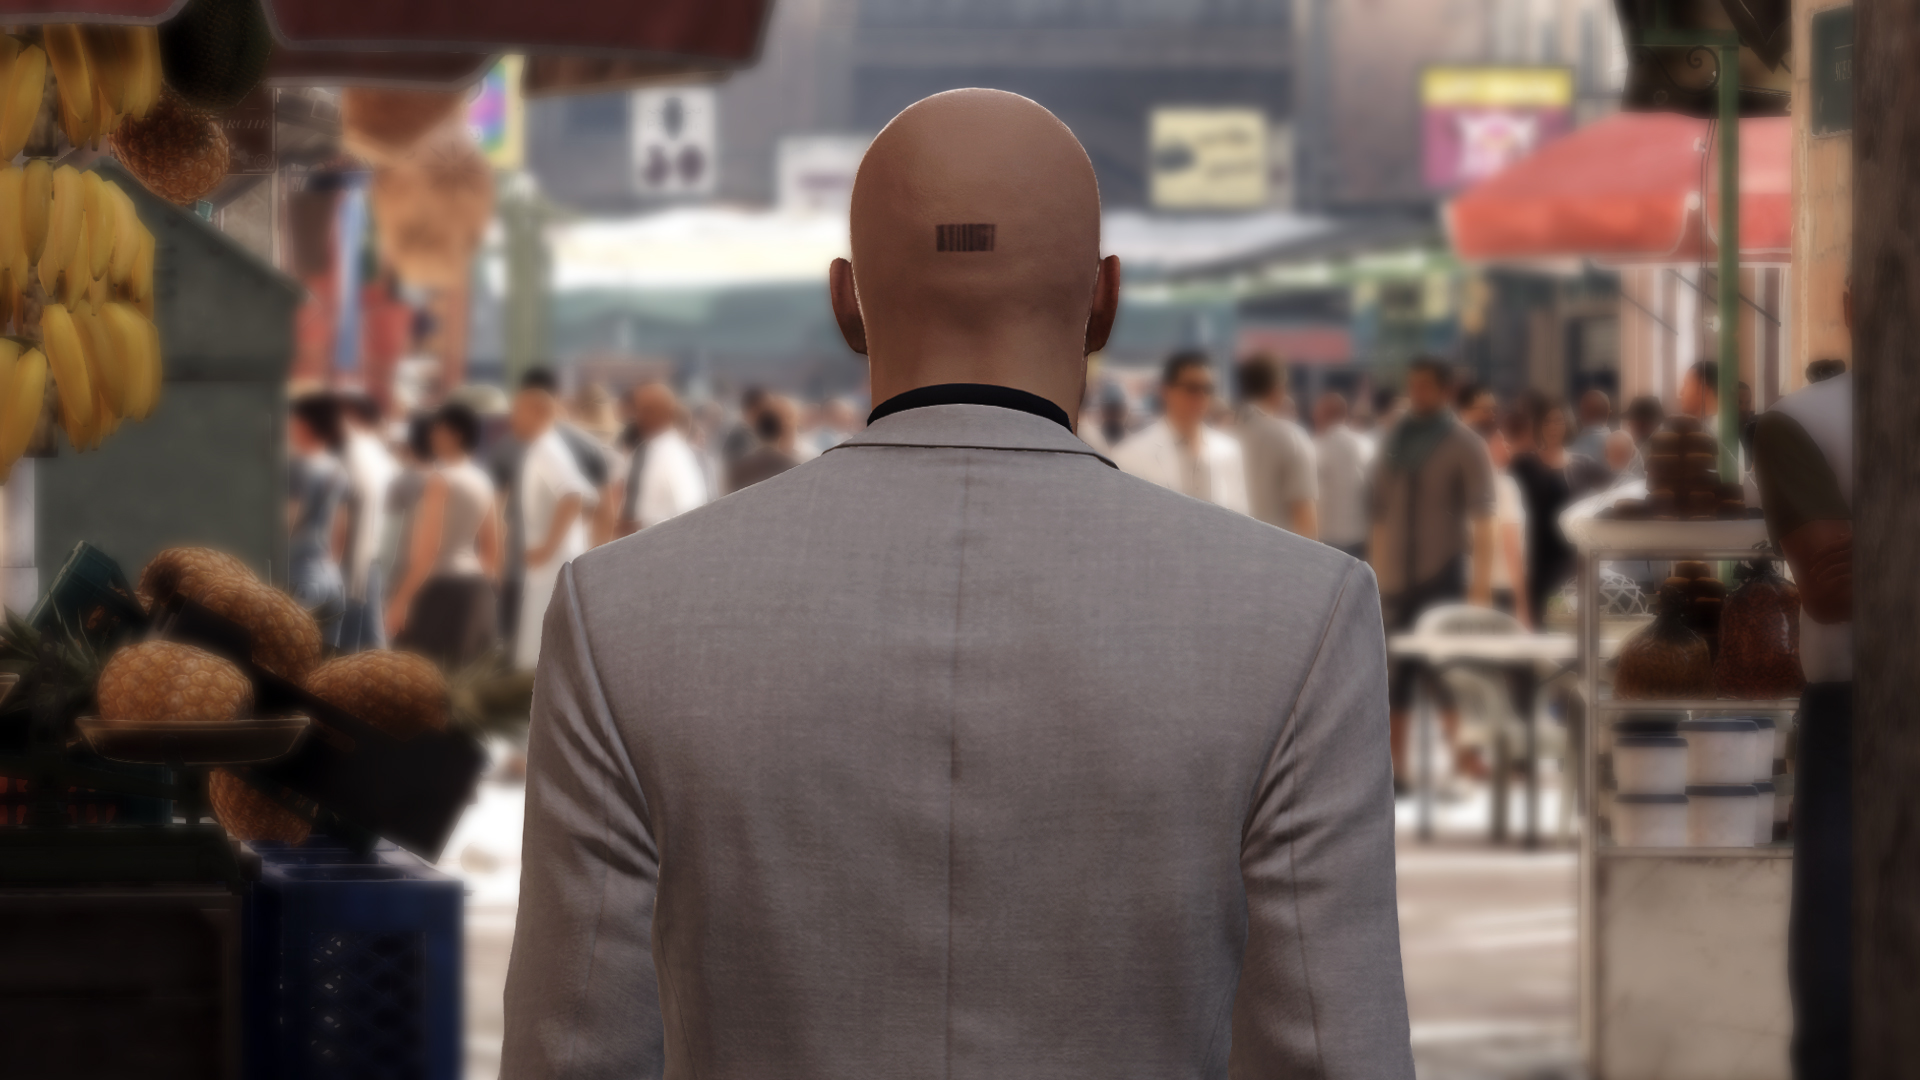 The good thing is, you can just scan your hitman with your phone these days.